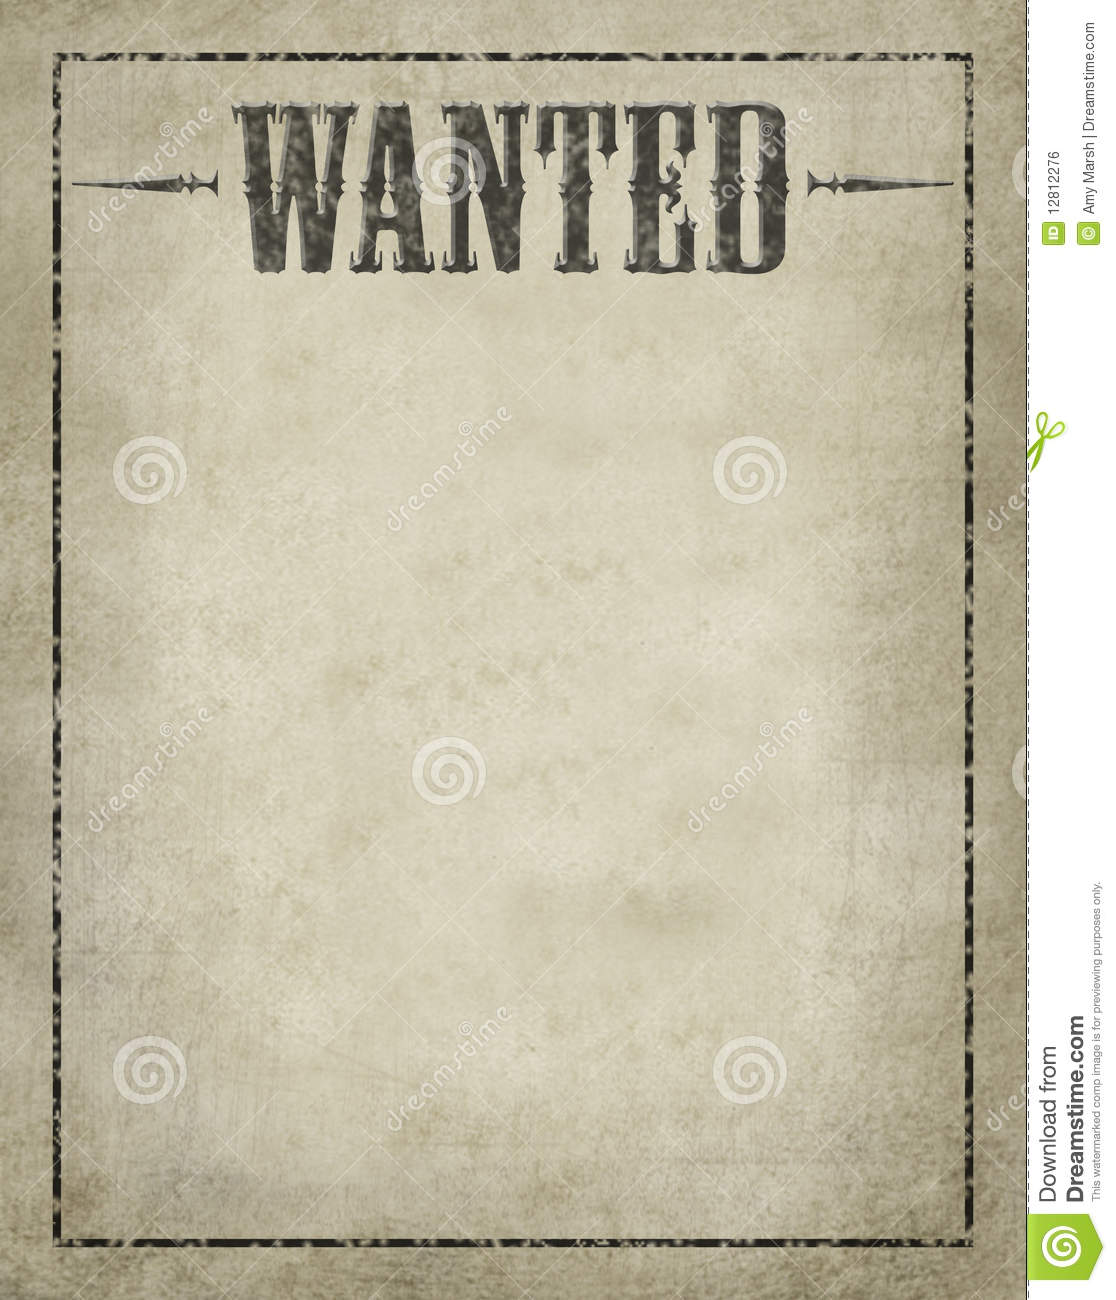 Wanted Poster stock illustration. Illustration of wanted - 12812276